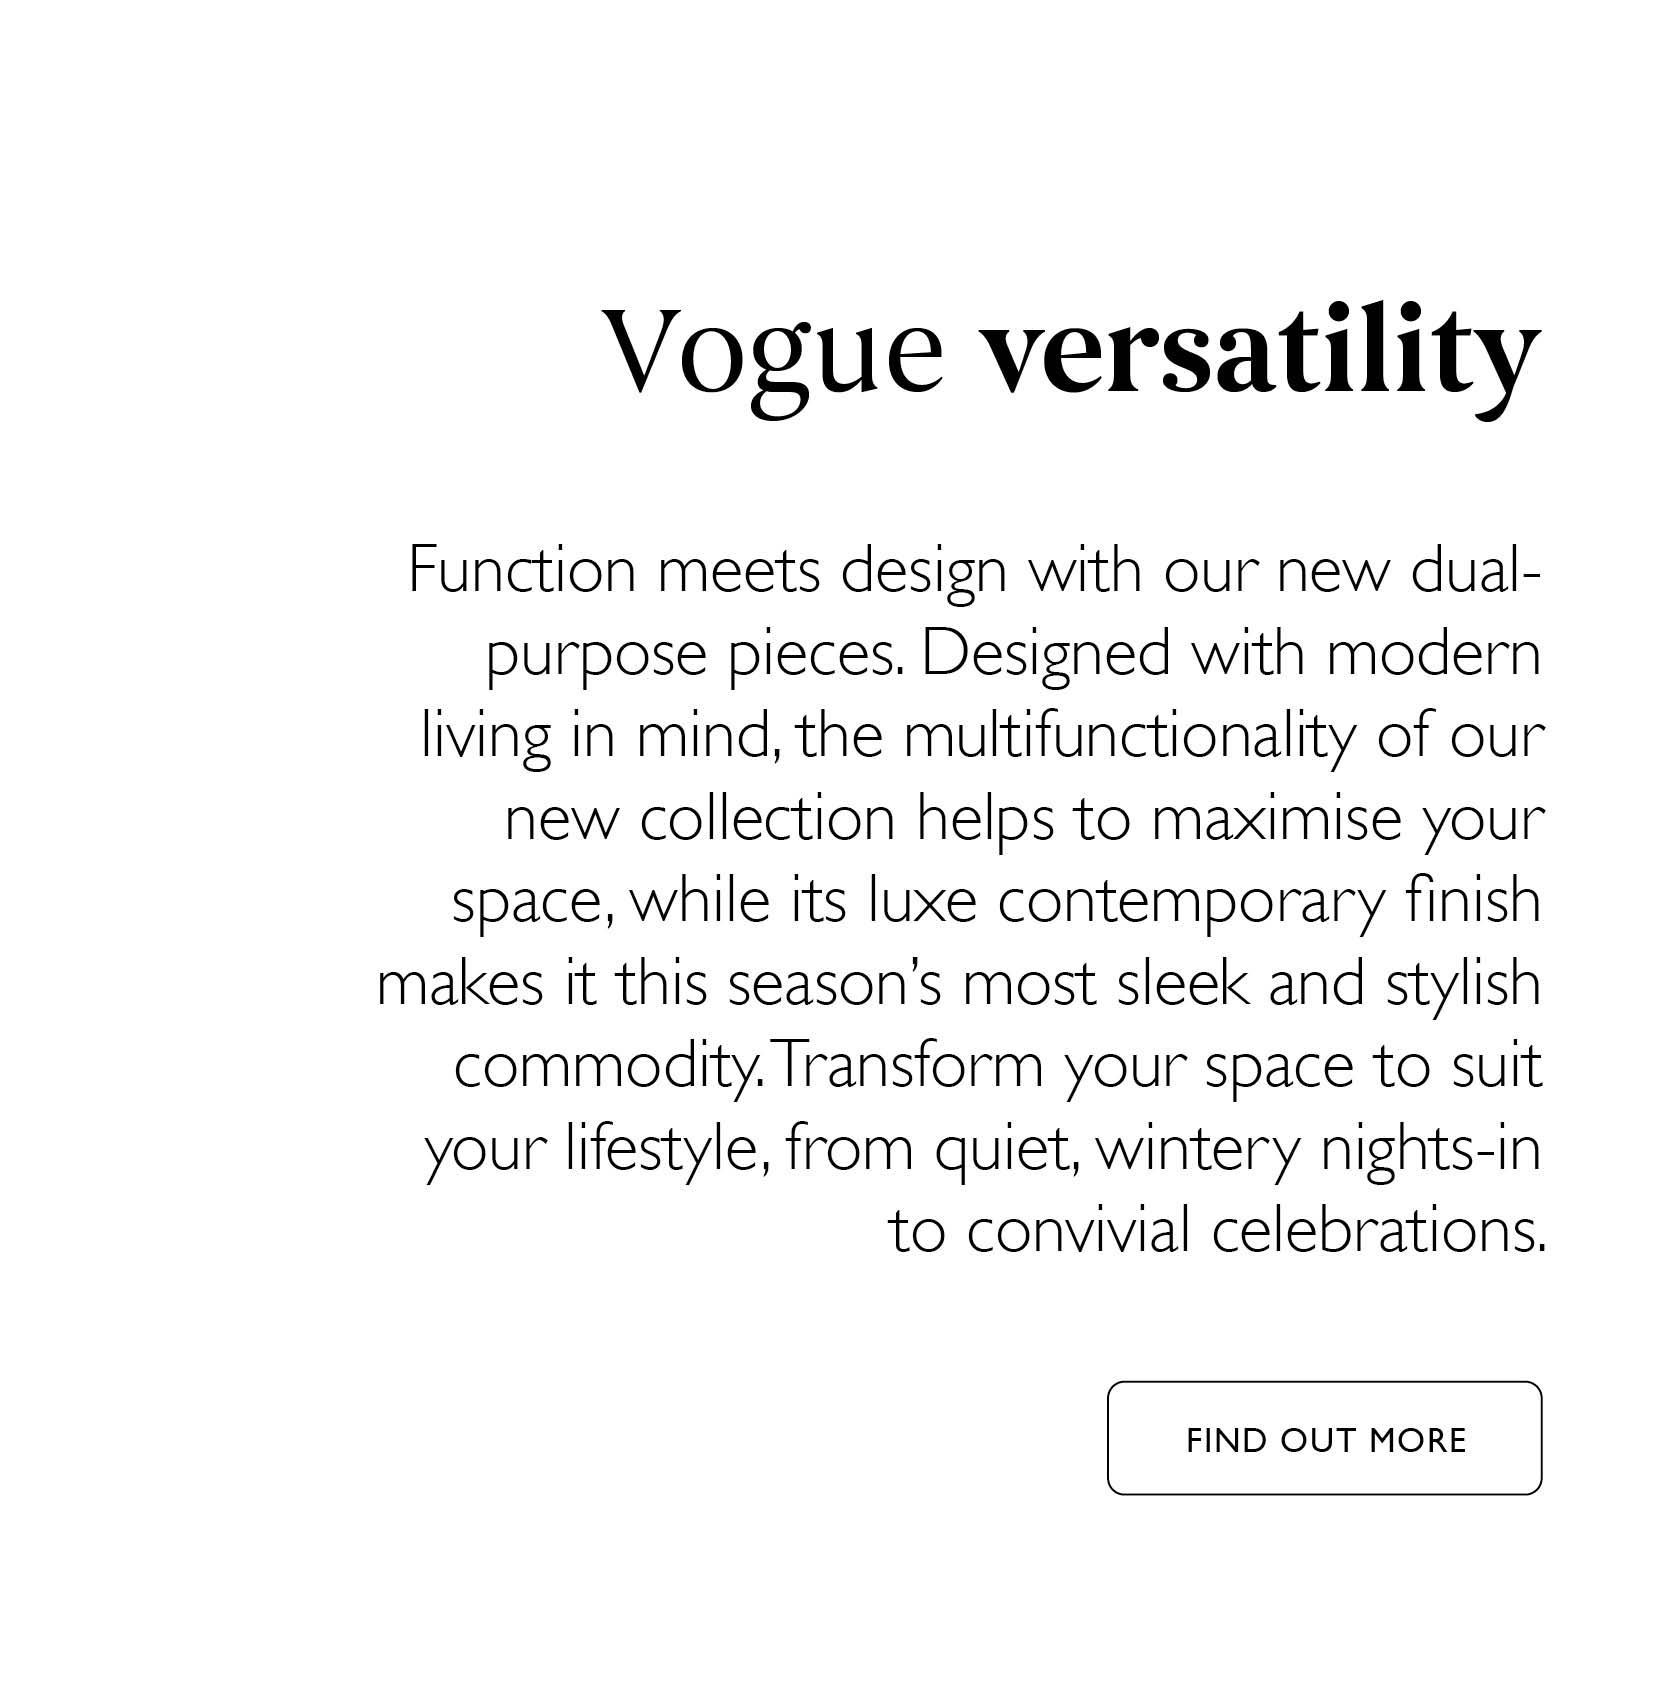 Vogue versatility - Function meets design with our dual purpose pieces. Click here to find out more